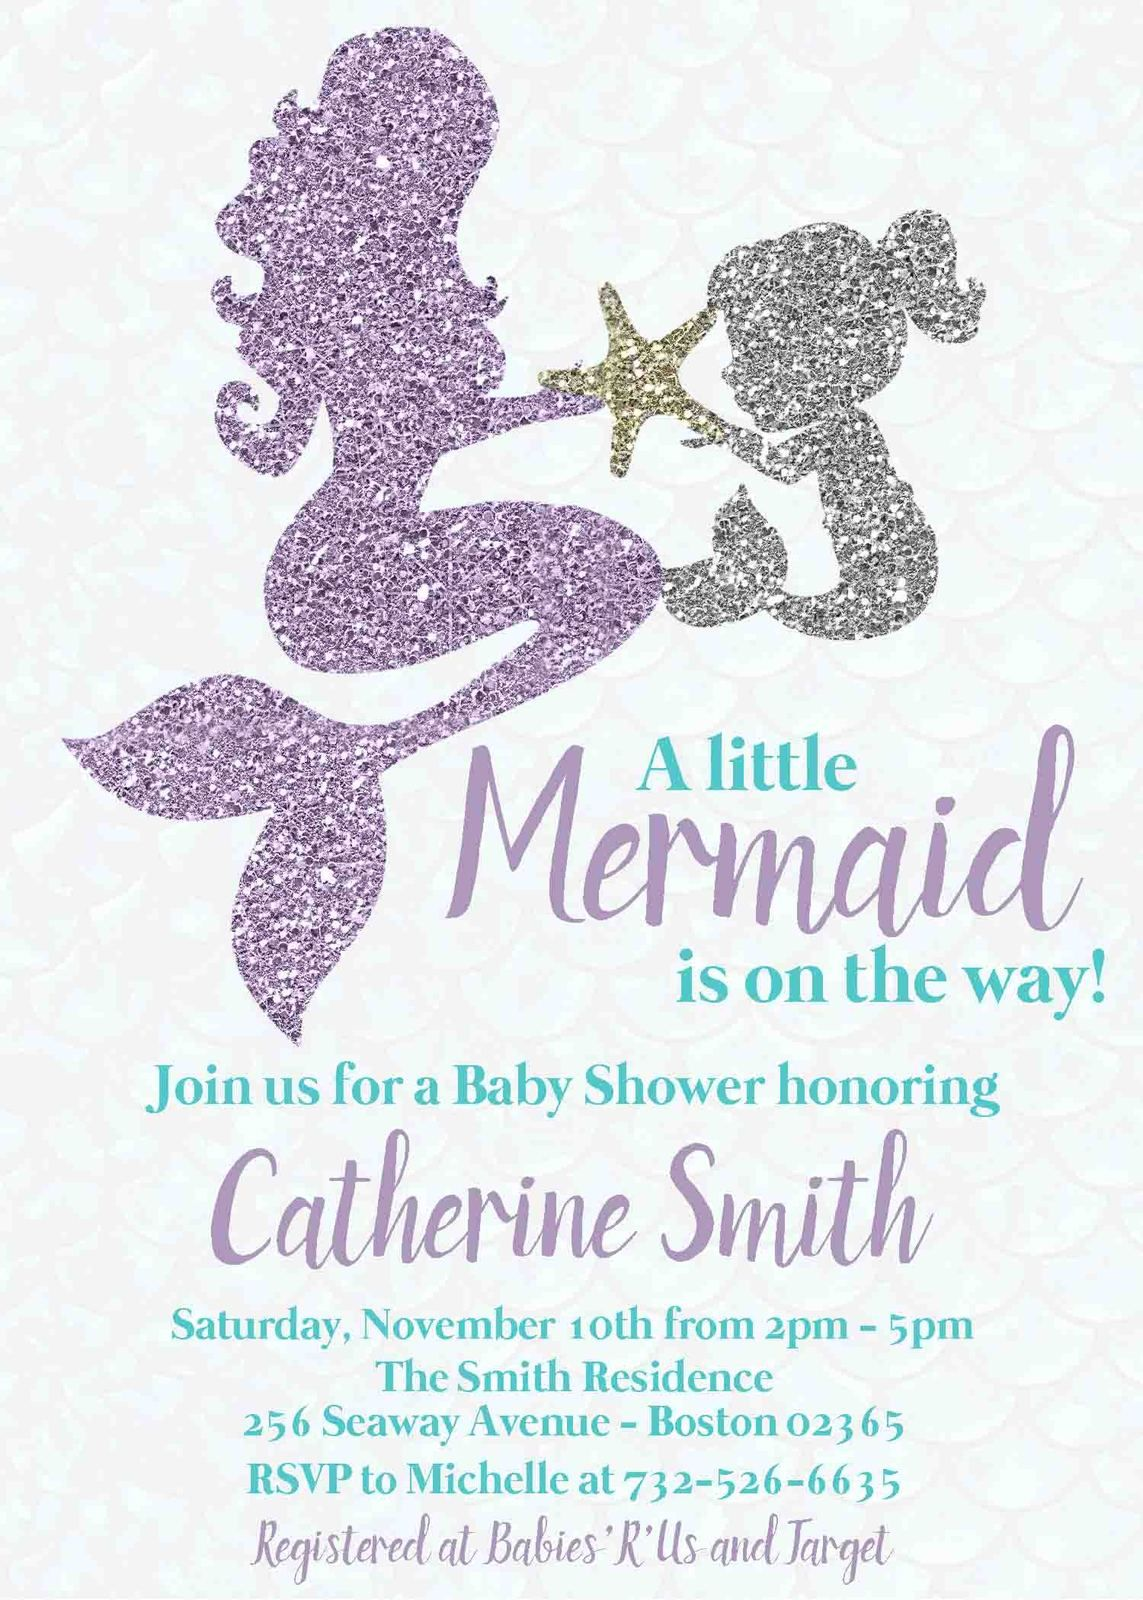 Full Size of Baby Shower:baby Shower Invitations For Boys Homemade Baby Shower Decorations Baby Shower Ideas Nursery Themes For Girls Elegant Baby Shower Nursery For Girls Baby Shower Ideas Baby Shower Invitations For Boys